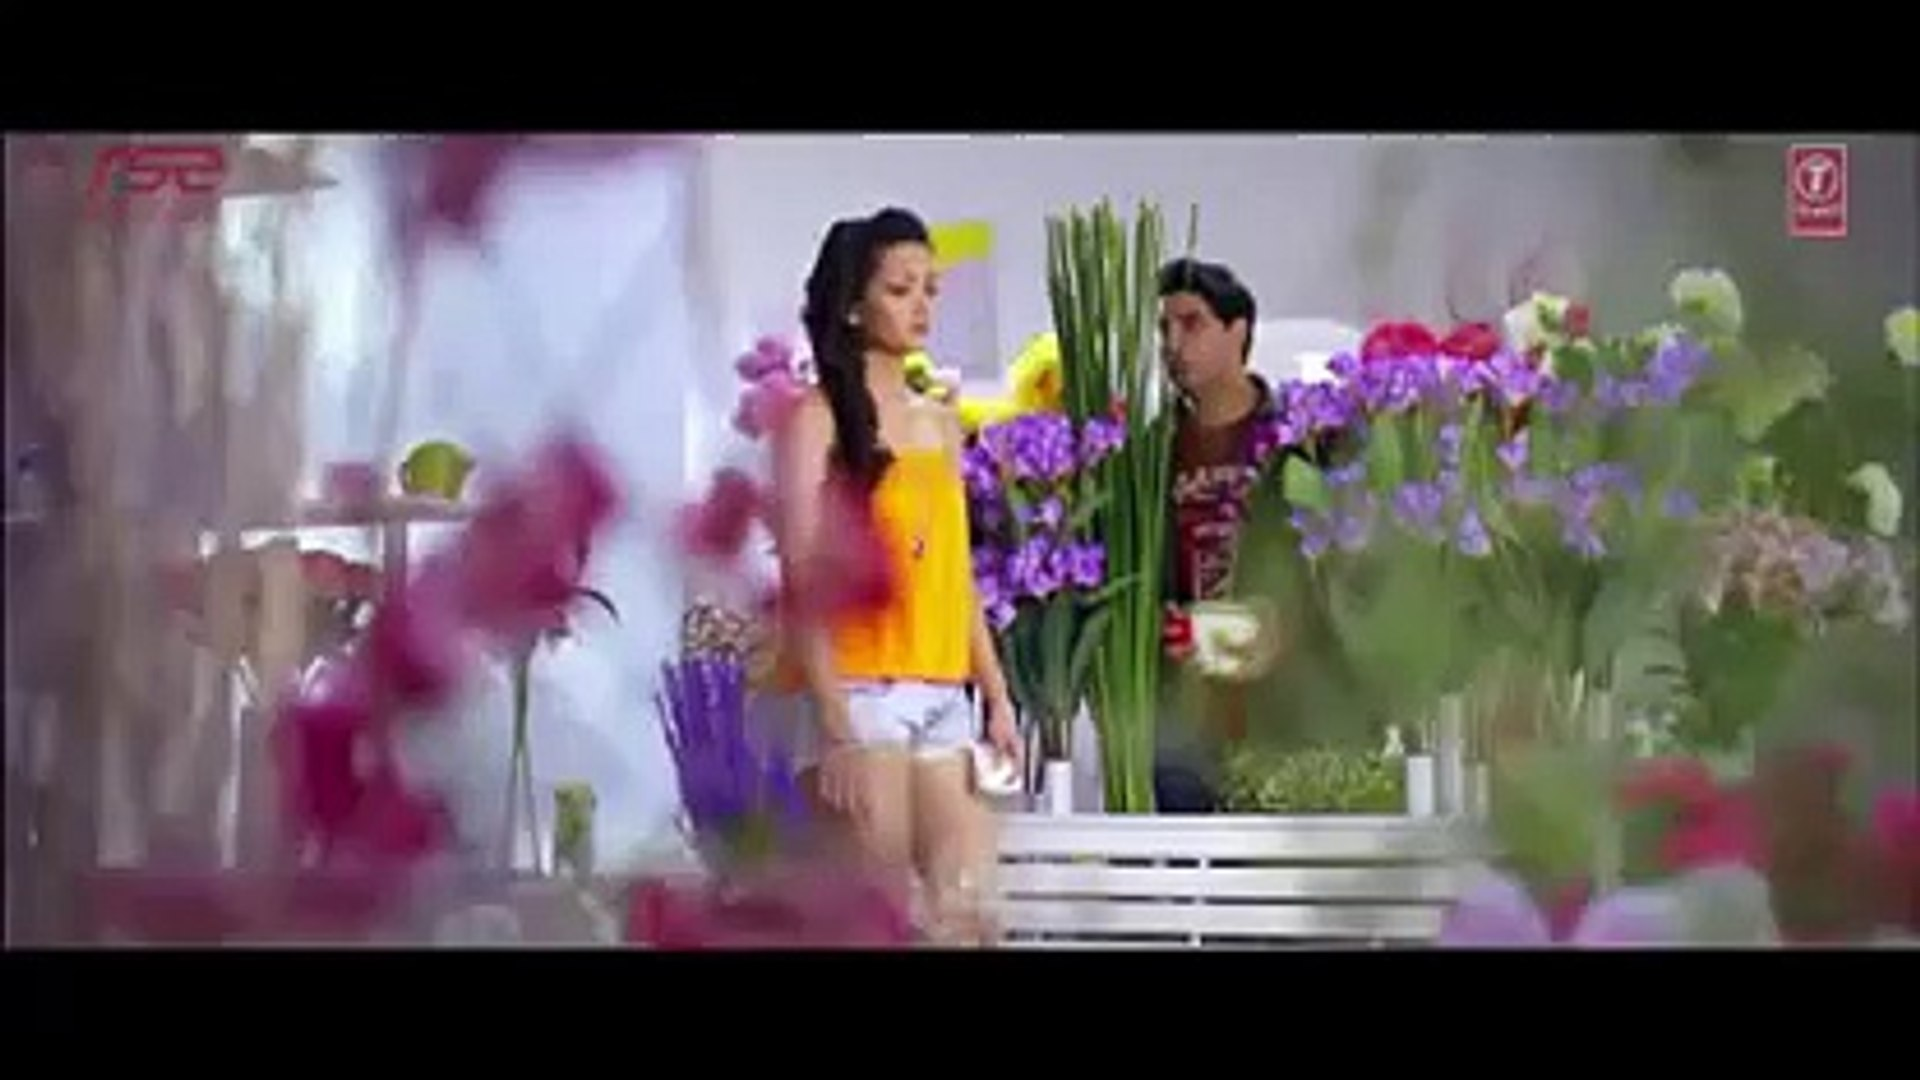 ★2013 Latest SUPERHIT Top 10 Hindi Video Songs Collection 2013 ★March- April 2013